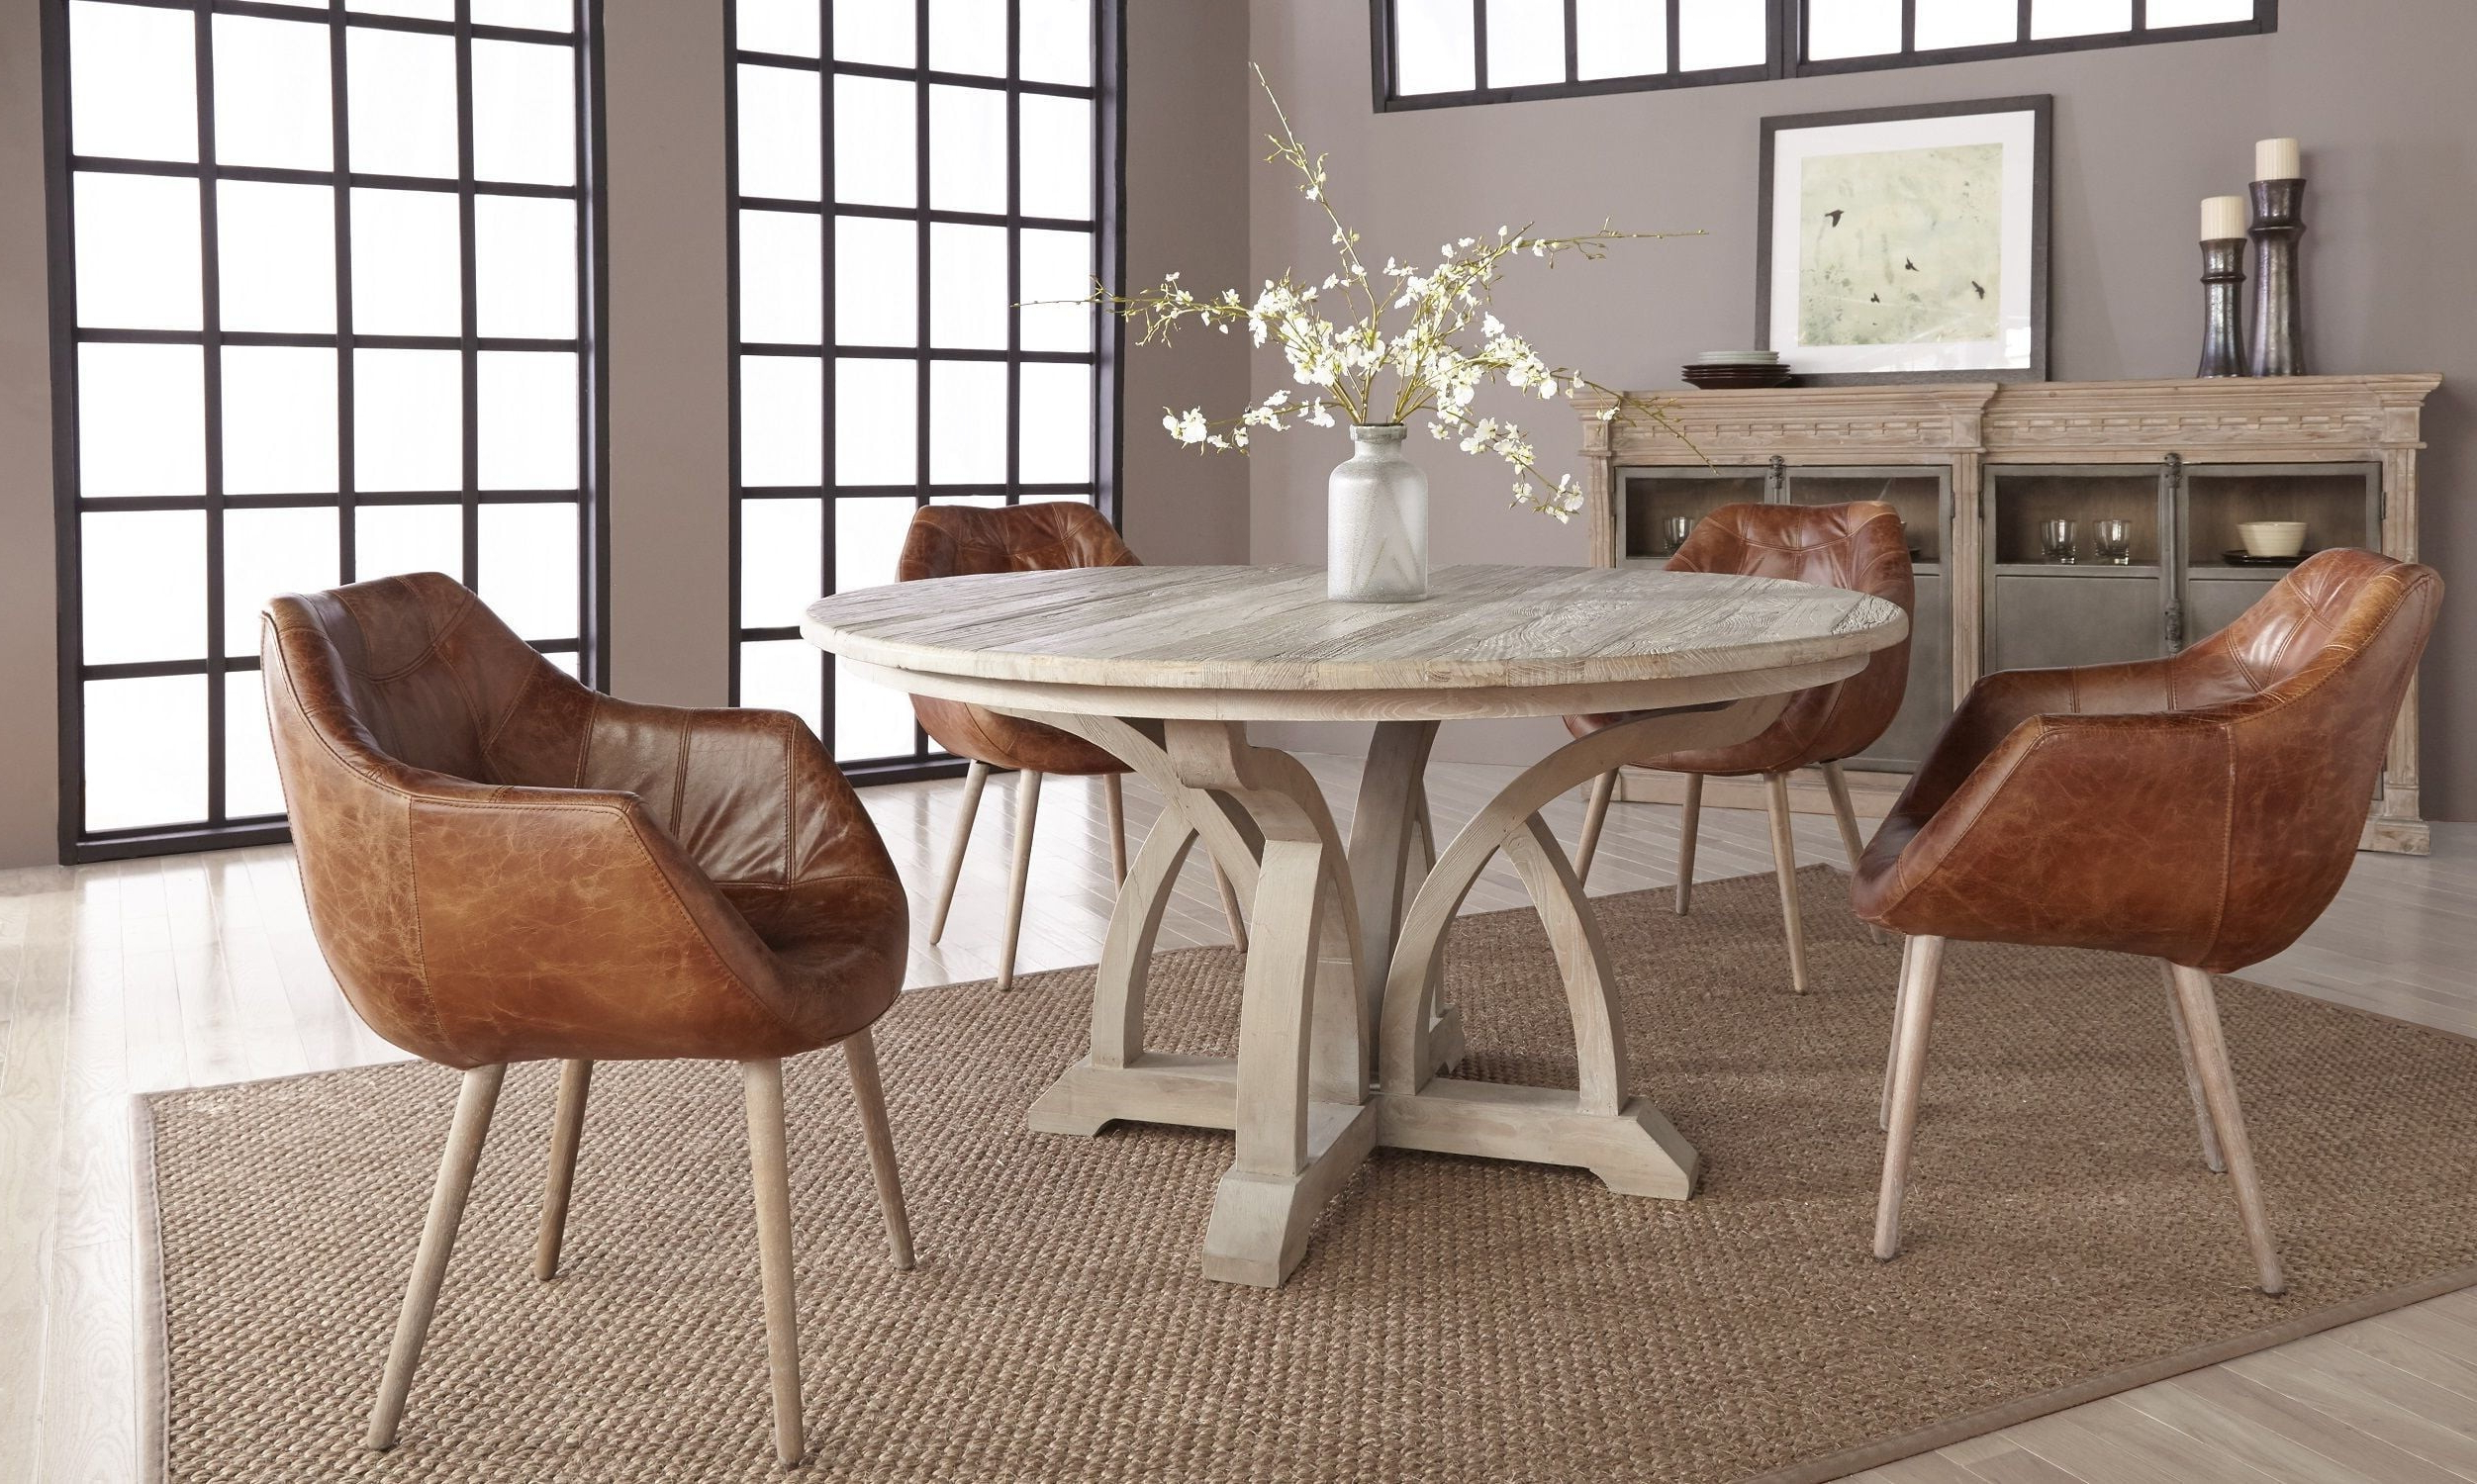 "Morris Round Dining Tables Throughout Best And Newest Carnegie Smoke Gray Elm 60"" Round Dining Room Set With Morris Chestnut Antique Leather Dining Chair (View 20 of 30)"